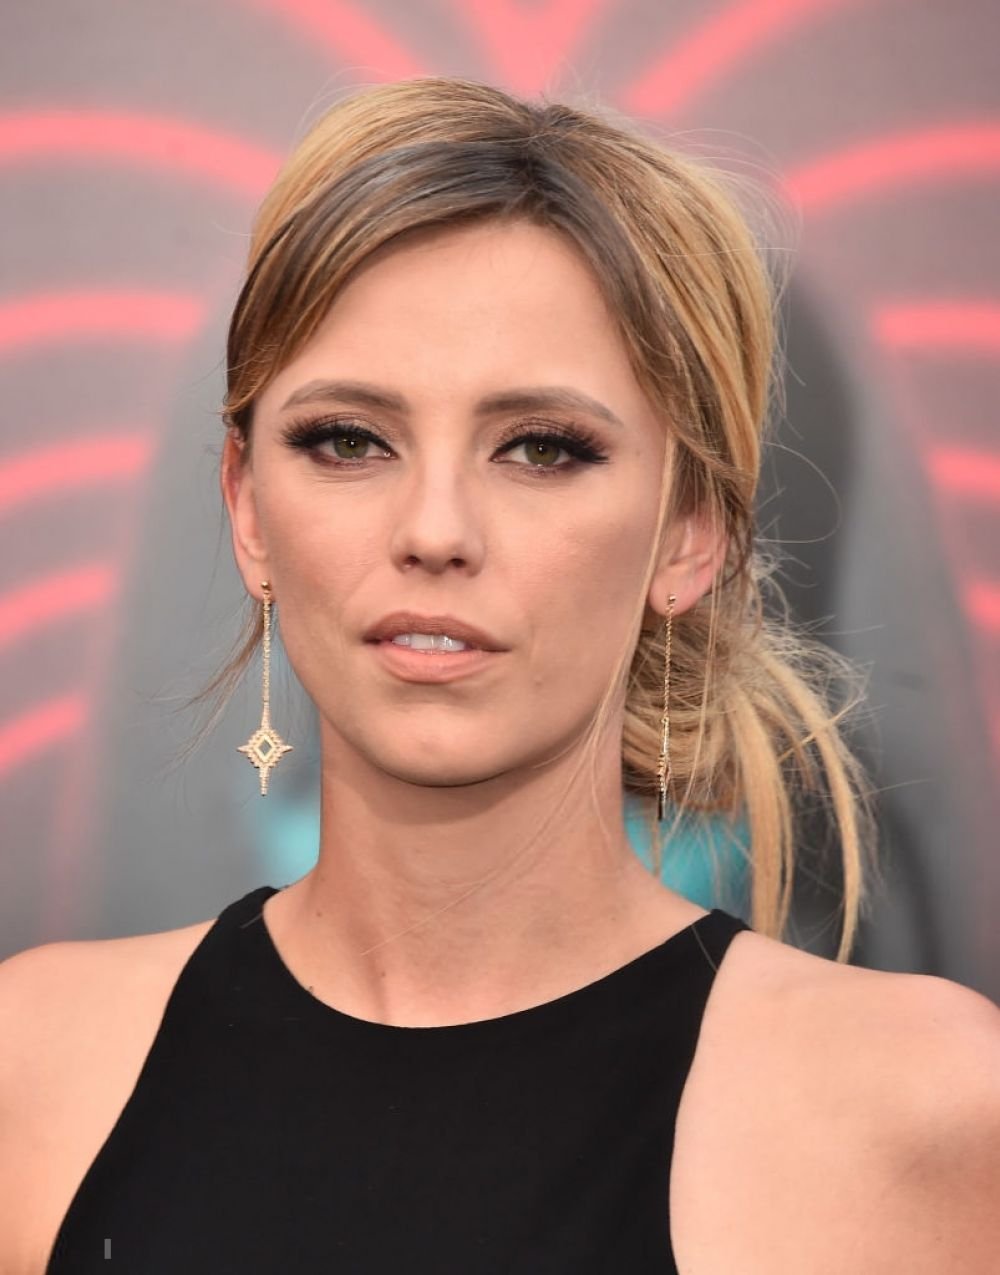 Riley Voelkel At The Spy Who Dumped Me film premiere in